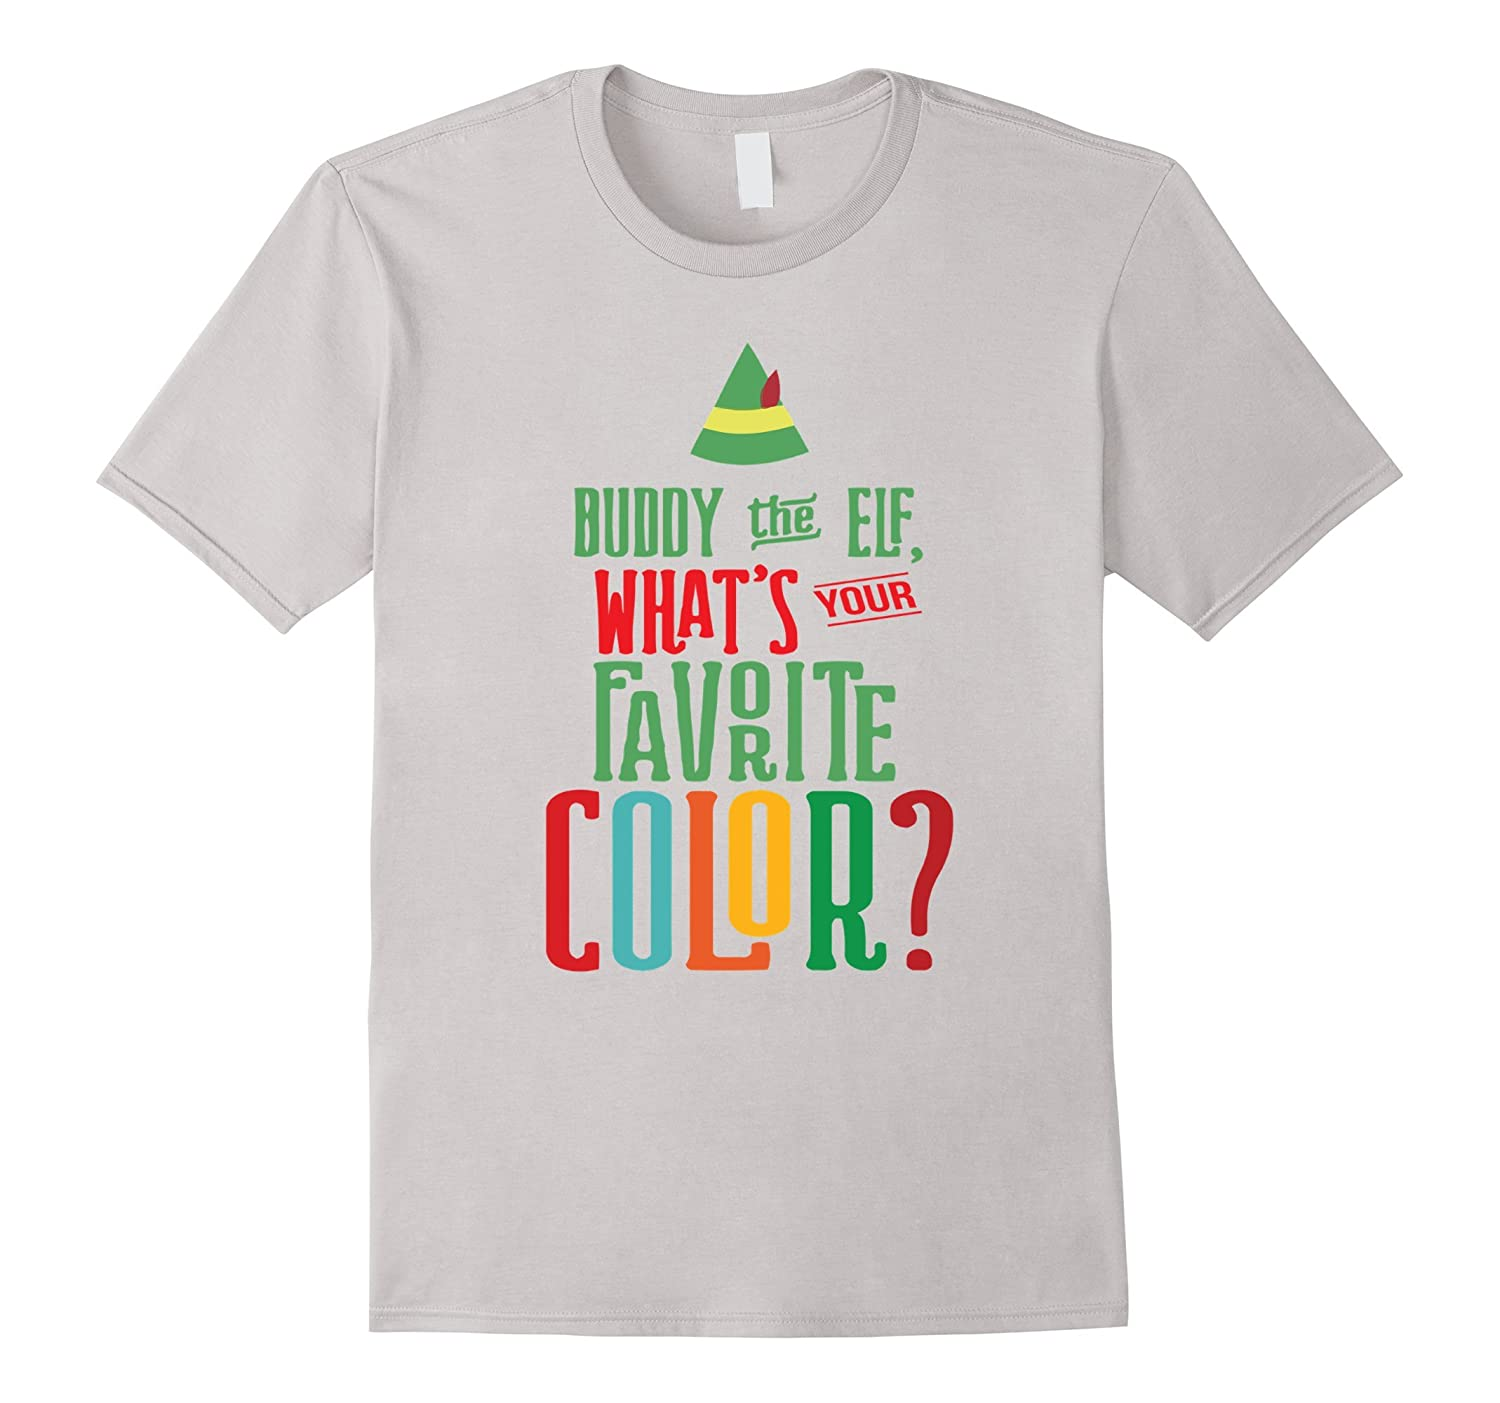 Buddy The Elf Whats Your Favorite Color?  Christmas shirts-TD